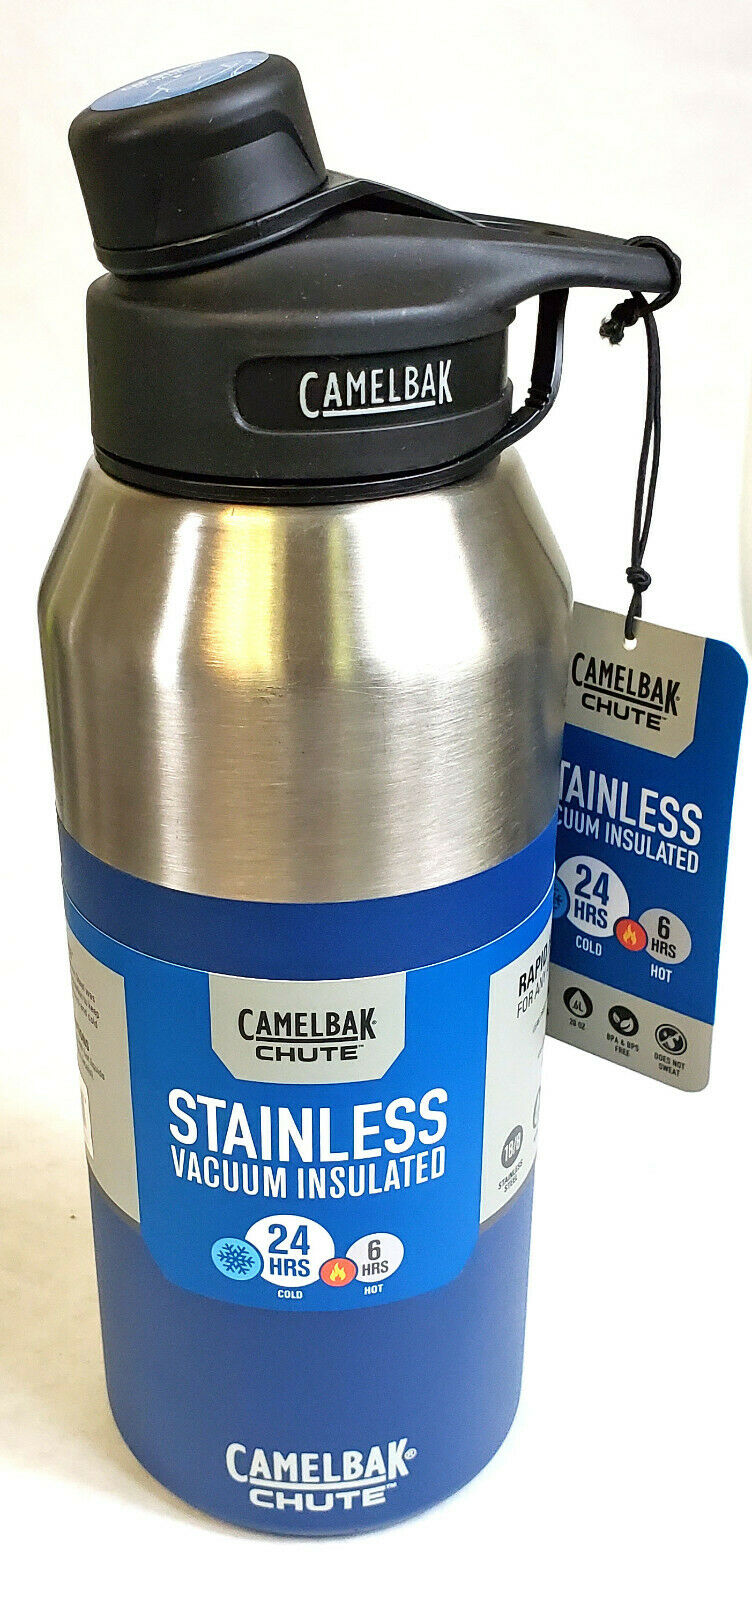 NEW CamelBak Chute Vacuum Insulated Stainless Water Bottle 40 oz blueE